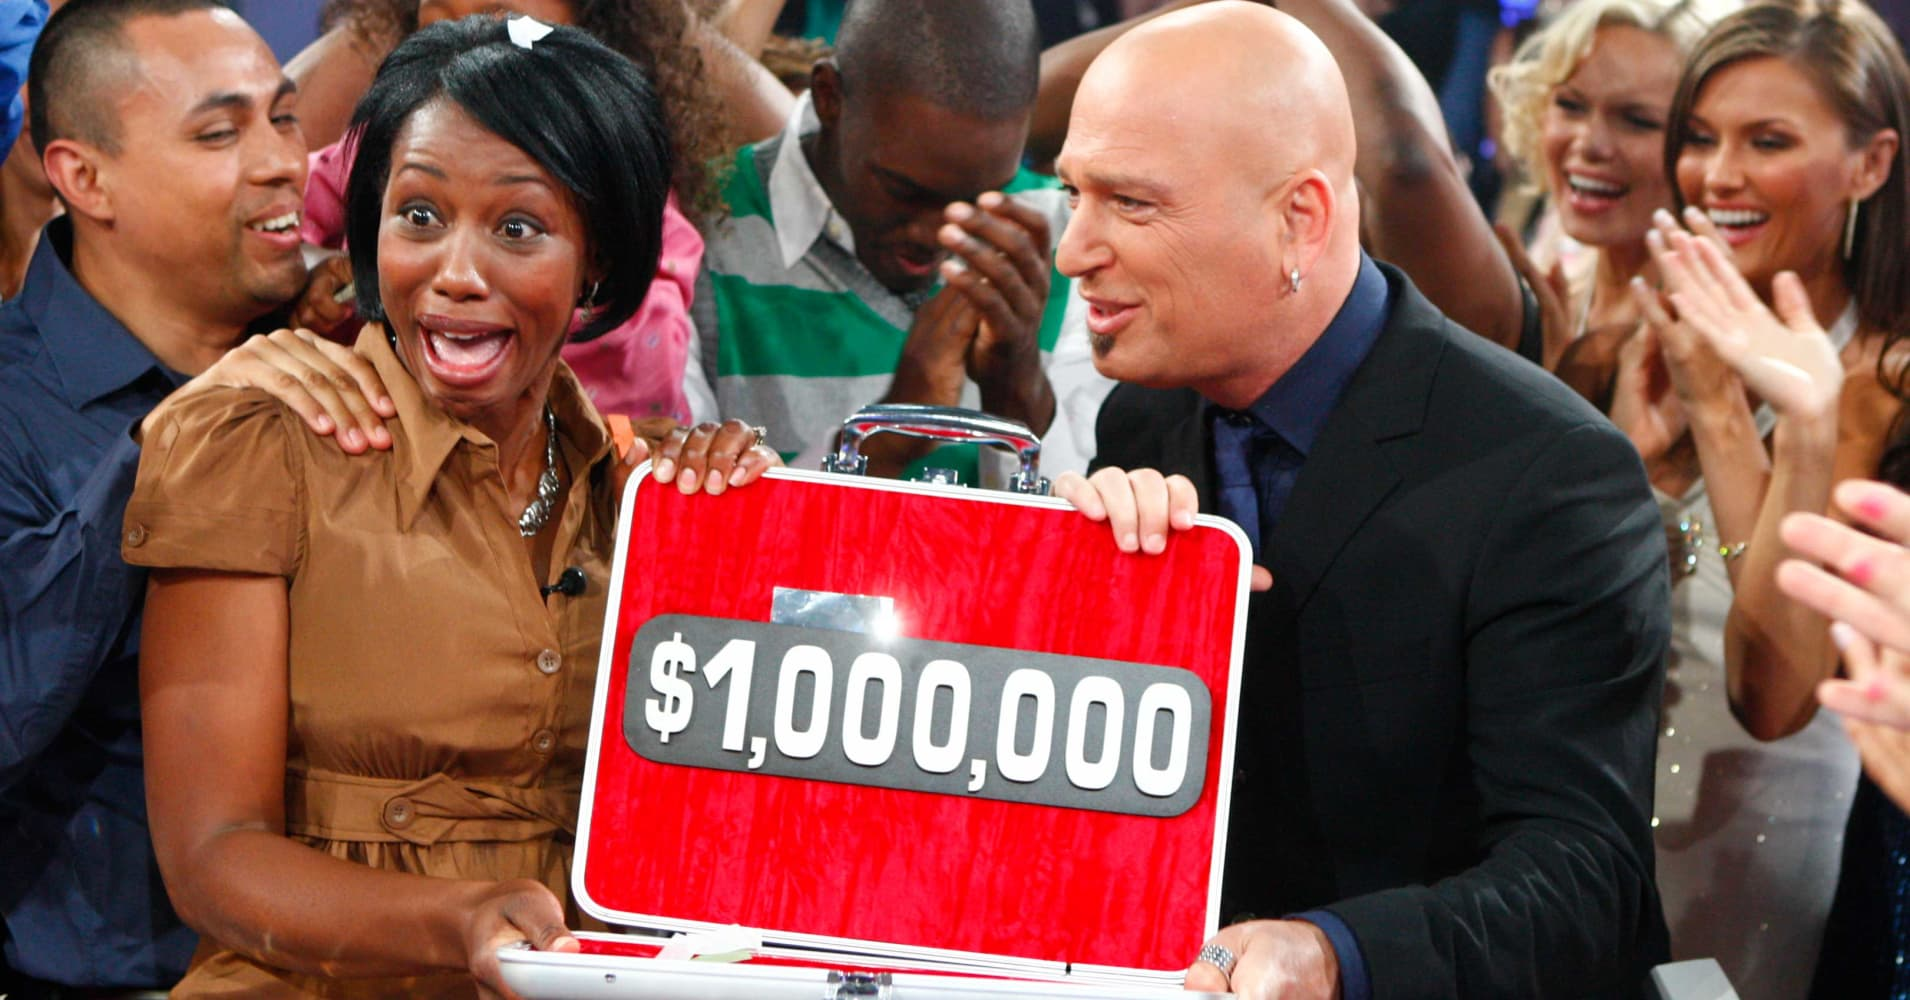 'Deal or no Deal' champ: This is the worst part of winning $1 million